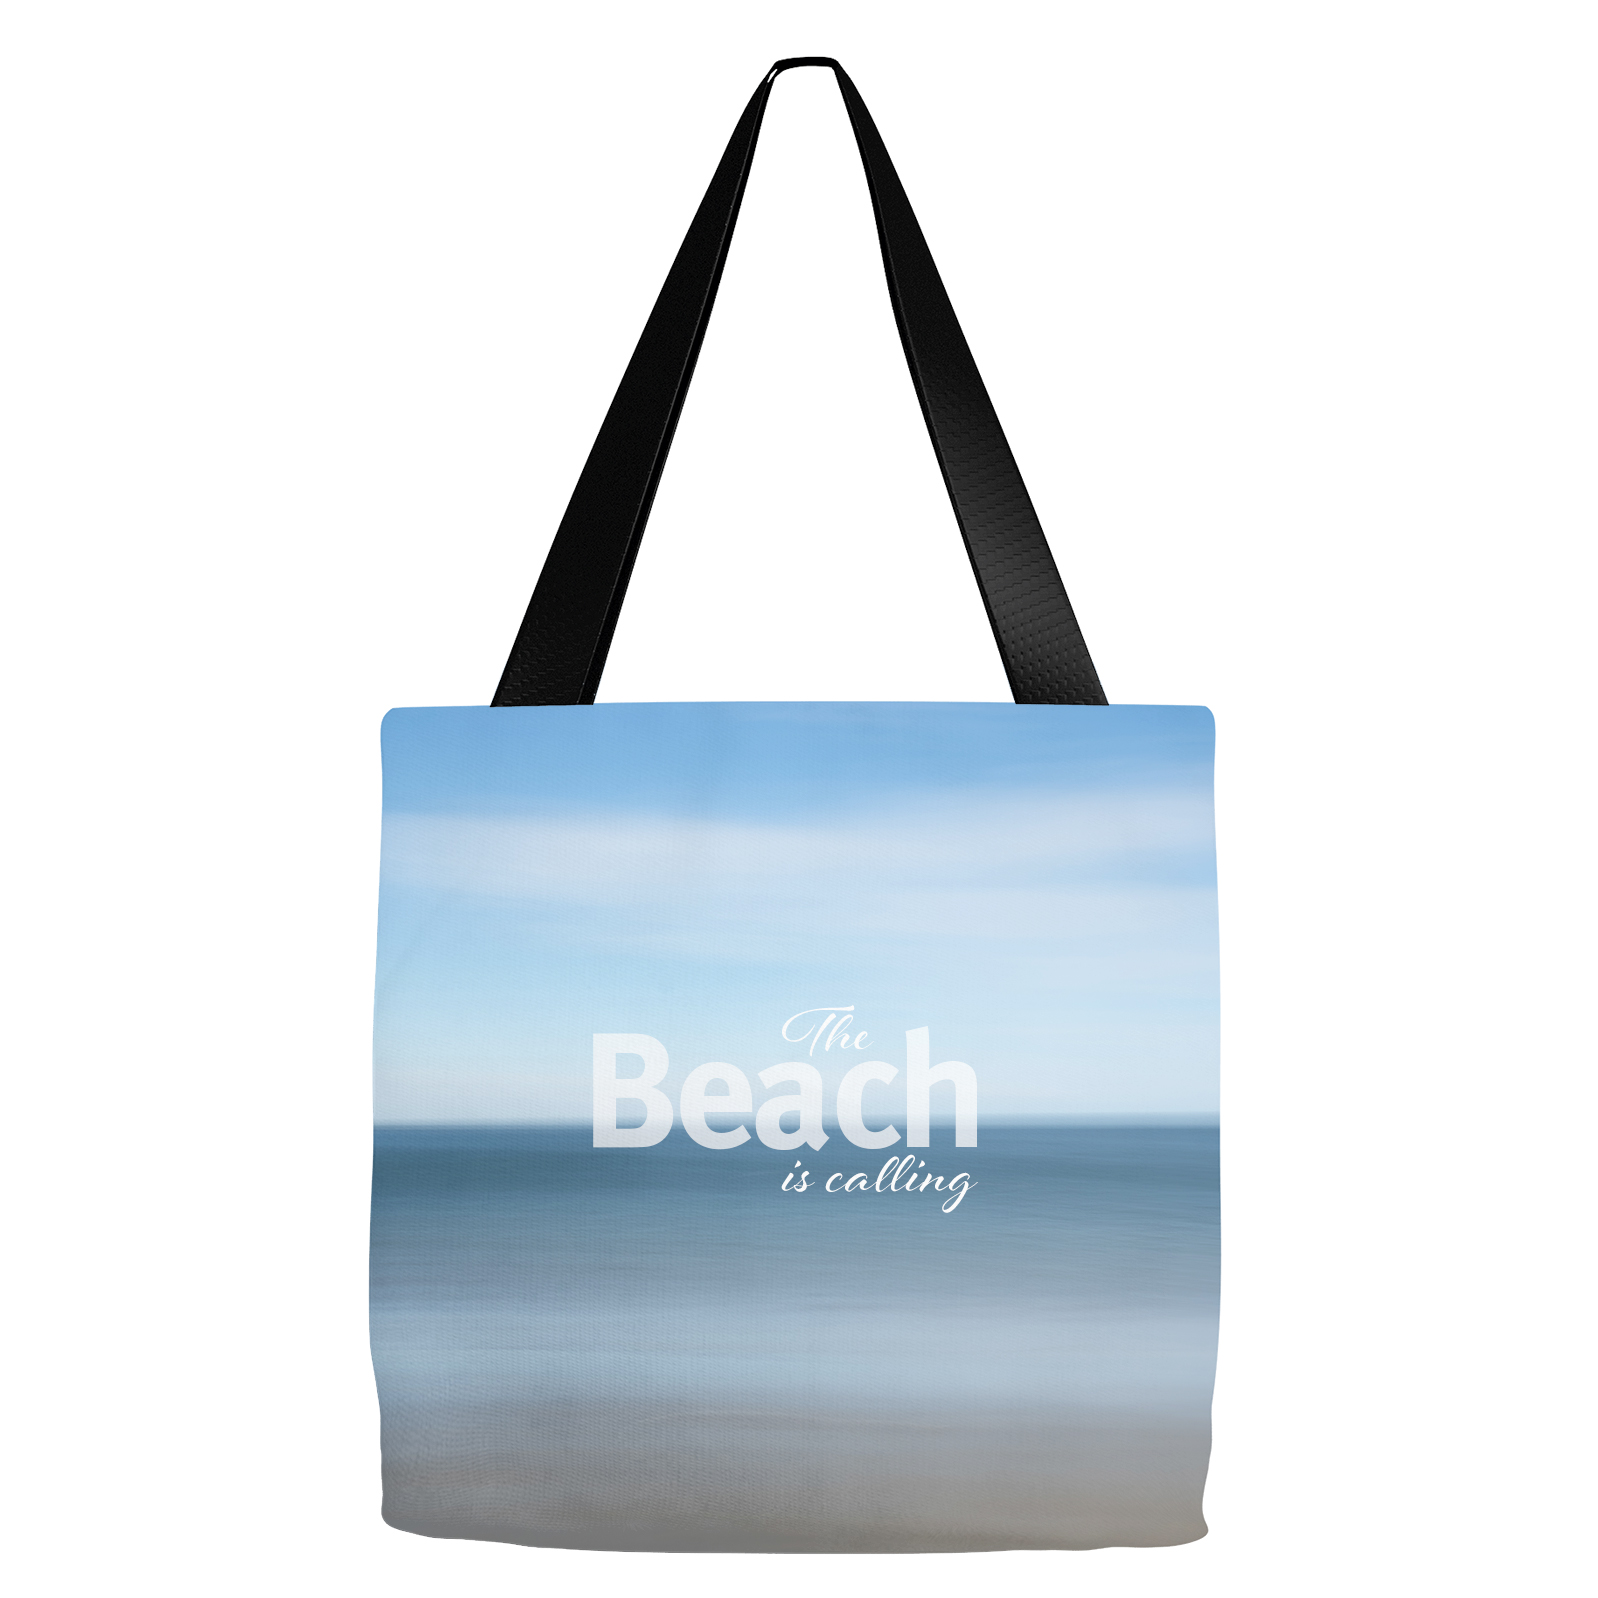 The Beach is Calling Tote Bag